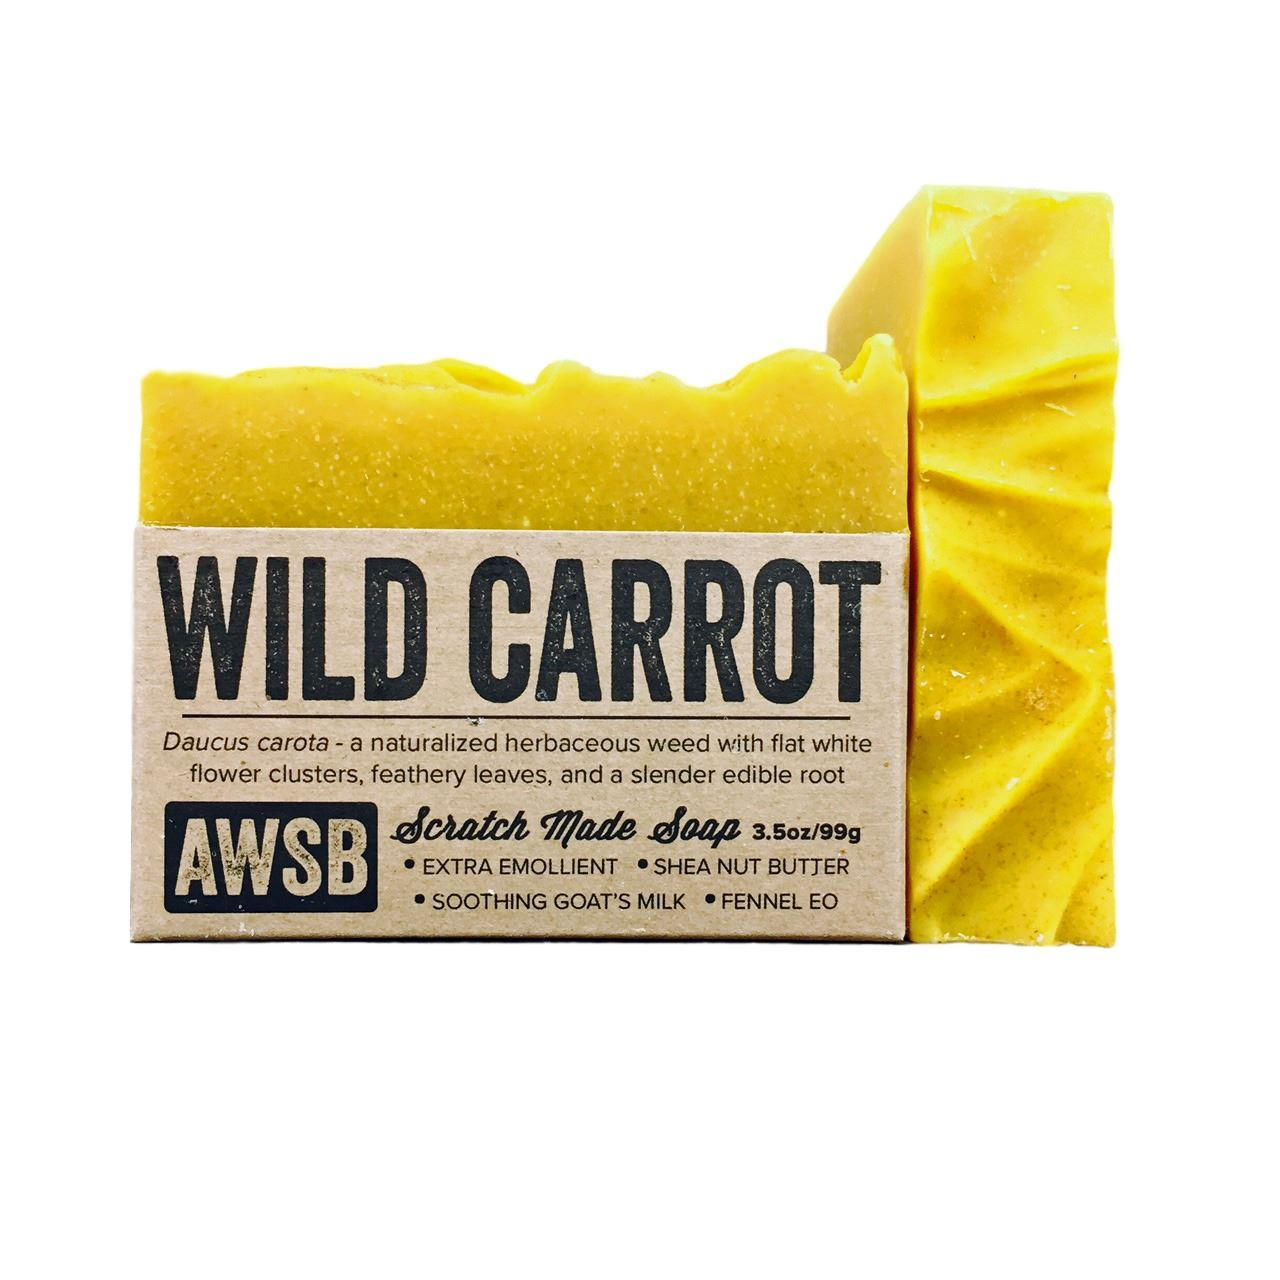 wild carrot soap carrot,queen anne's lace,wild,soap,complexion,moisturizing,exfoliating,shea butter,goats milk,goat milk,anti-aging,essential oils,natural,handmade,organic,fennel,facial,face,carrot seed